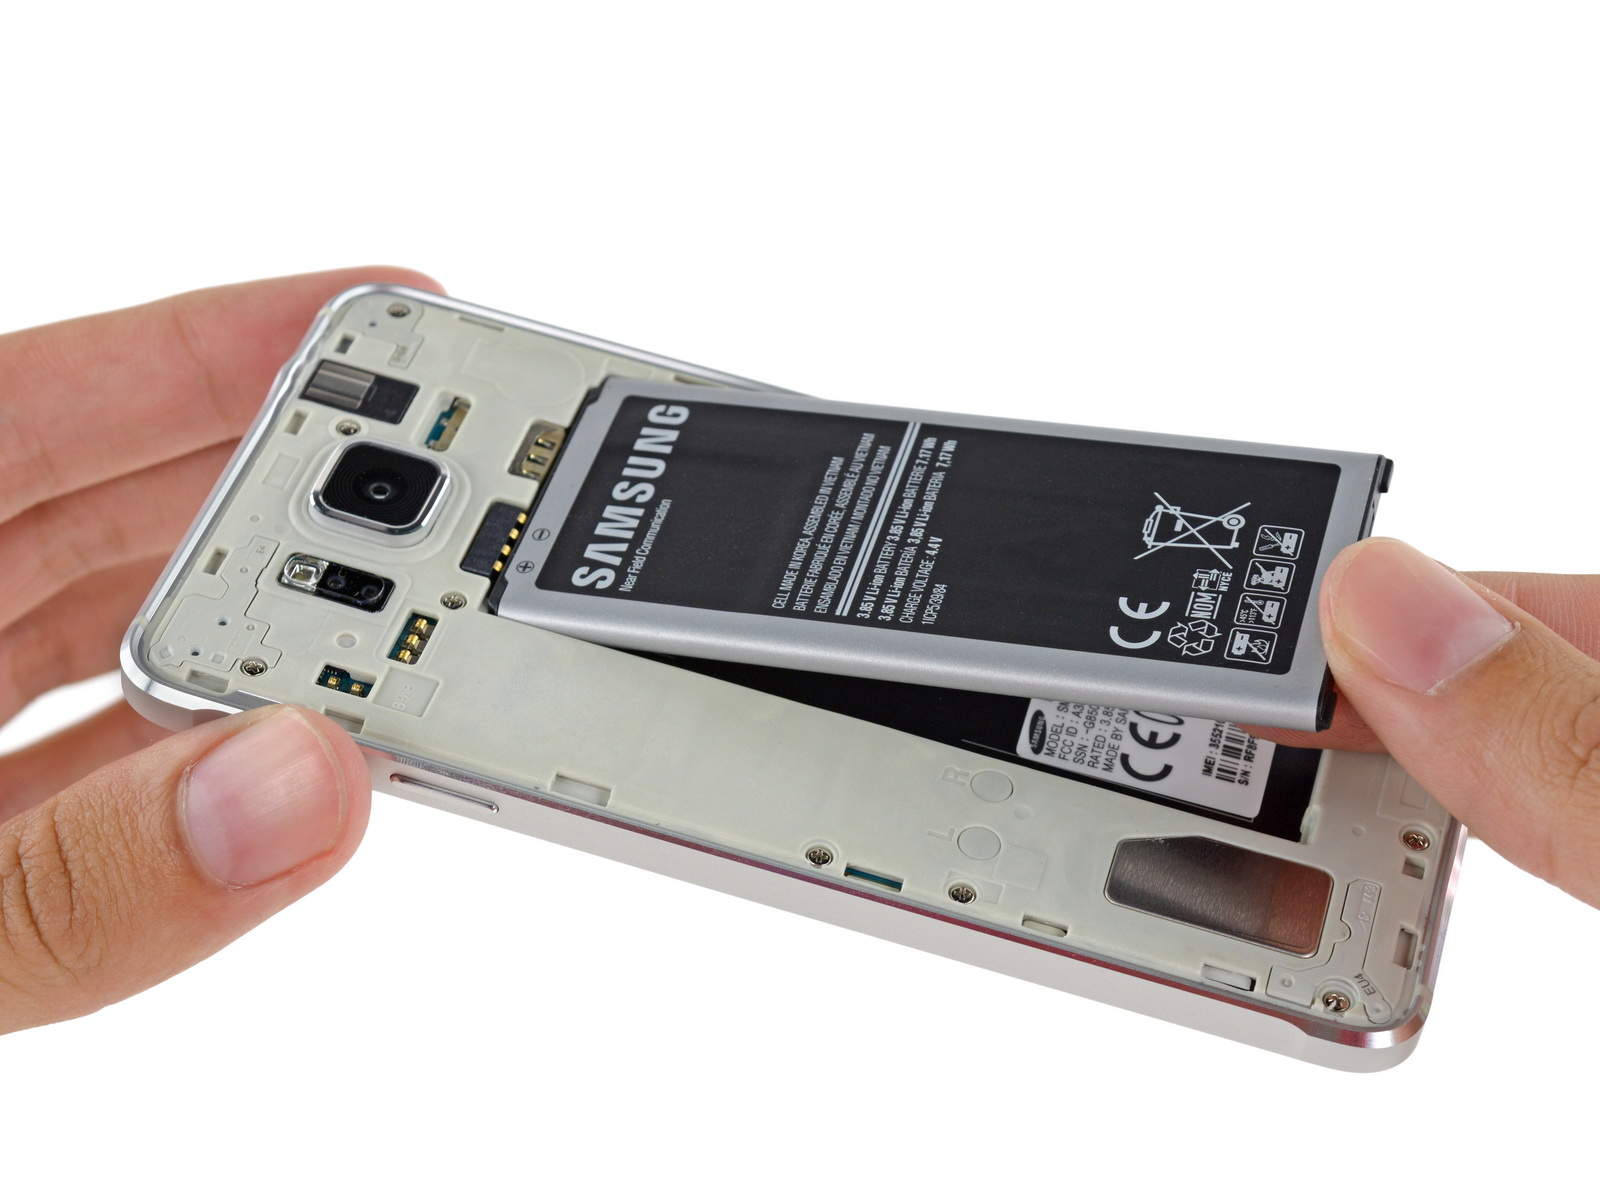 Samsung Galaxy Alpha Sm G850f Smartphone Review G850 Color Options Source Ifixit